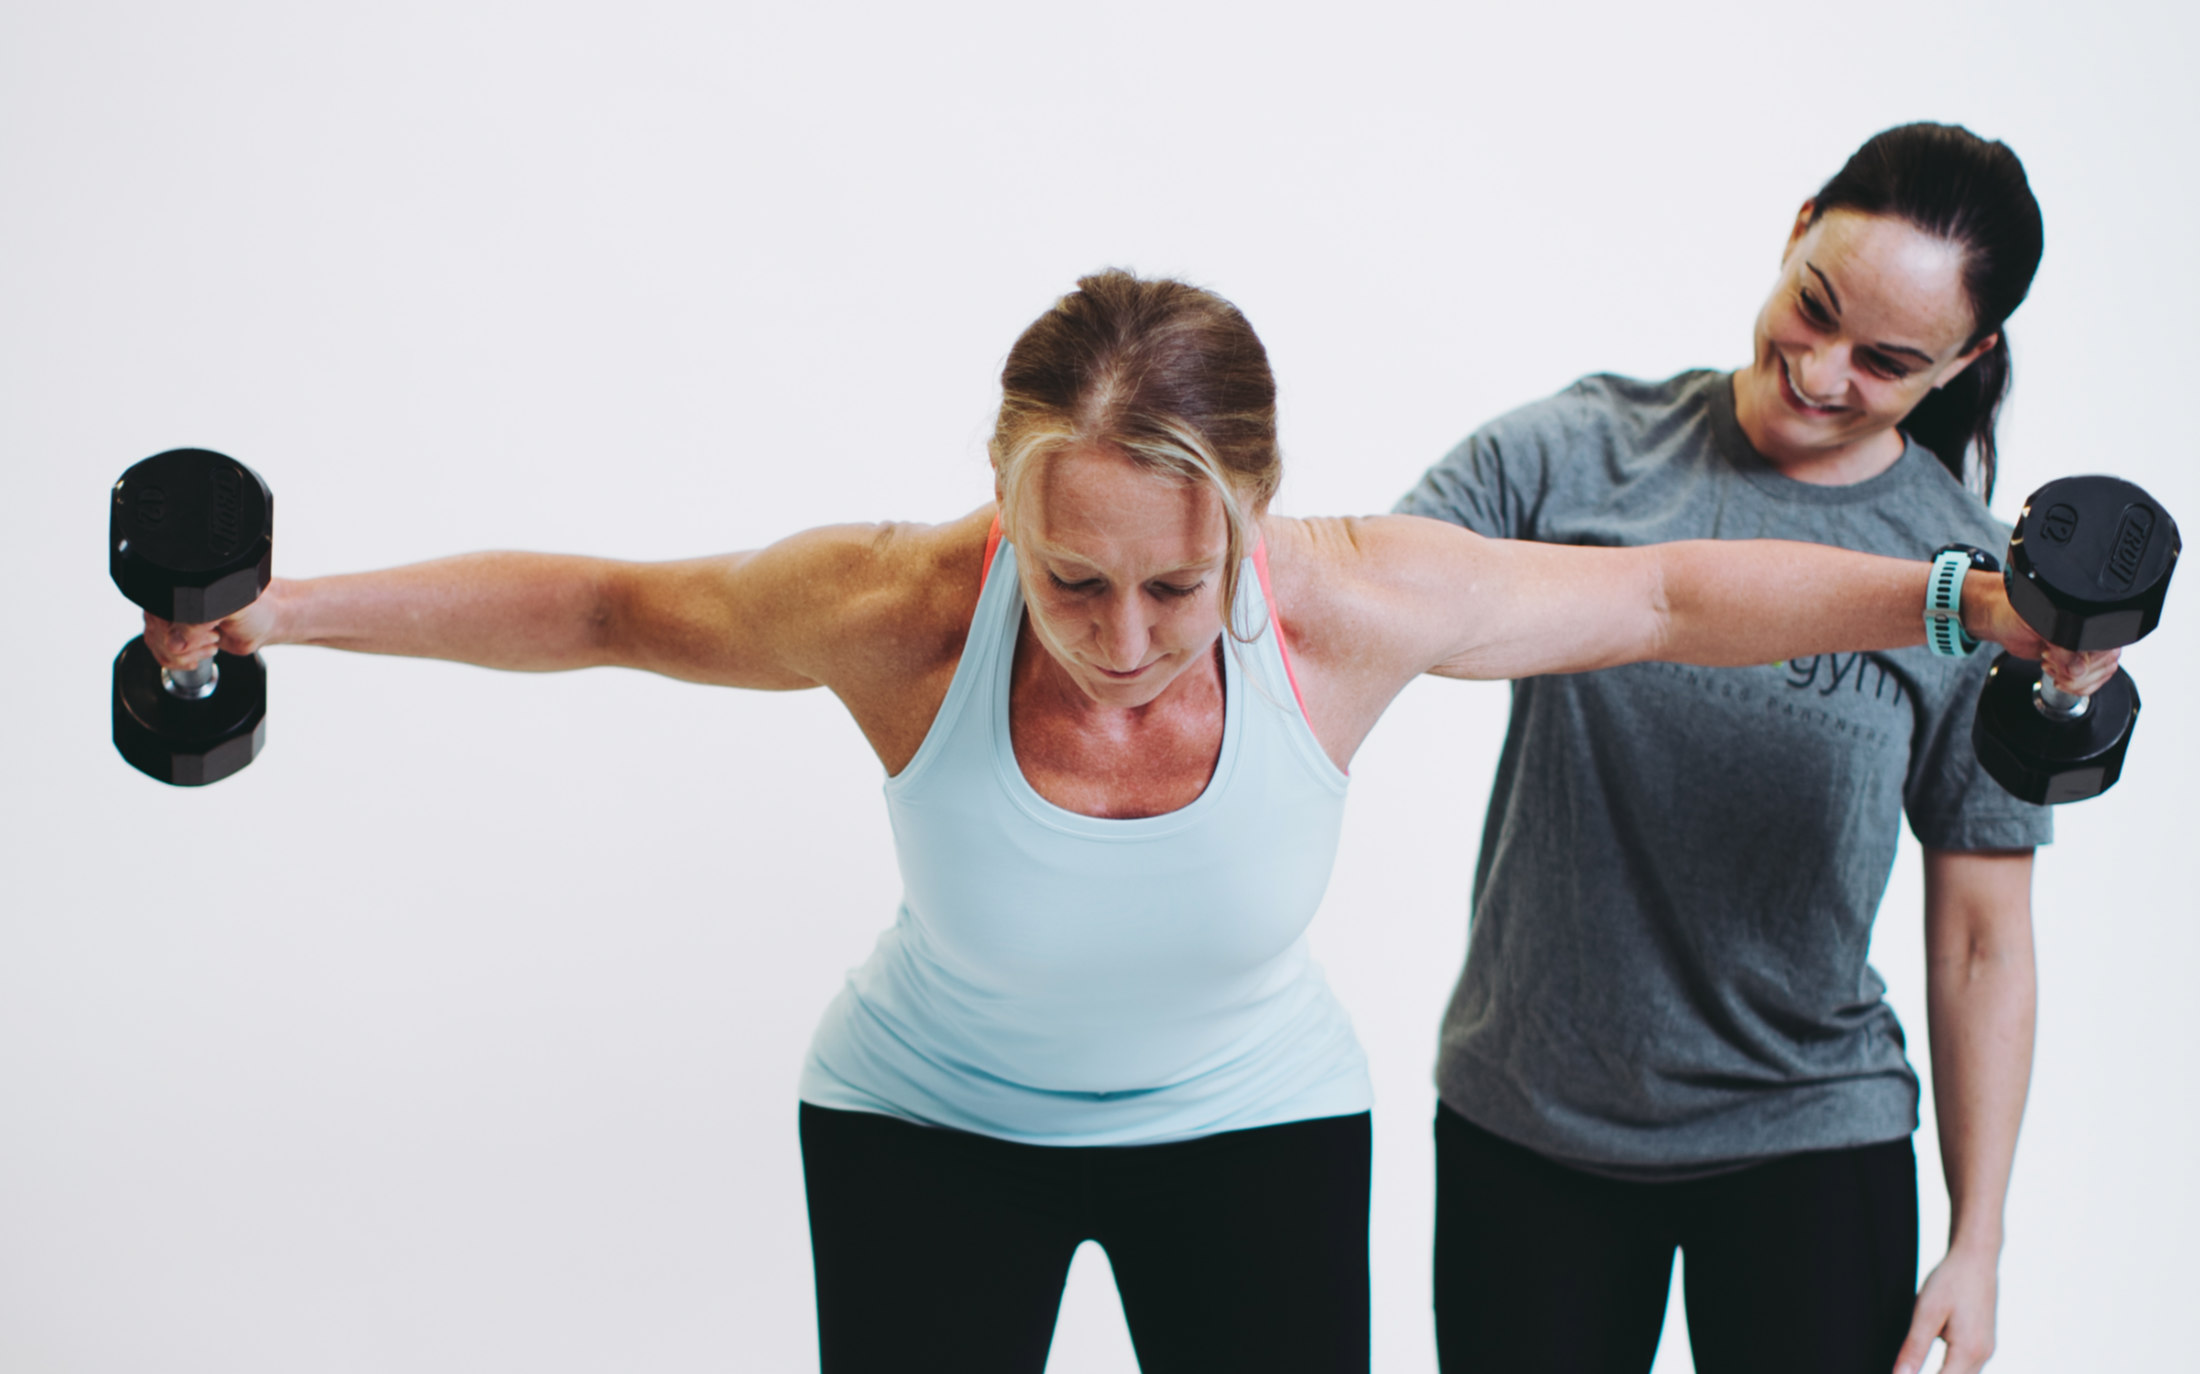 Our Health and Performance Gym focuses on your optimal health